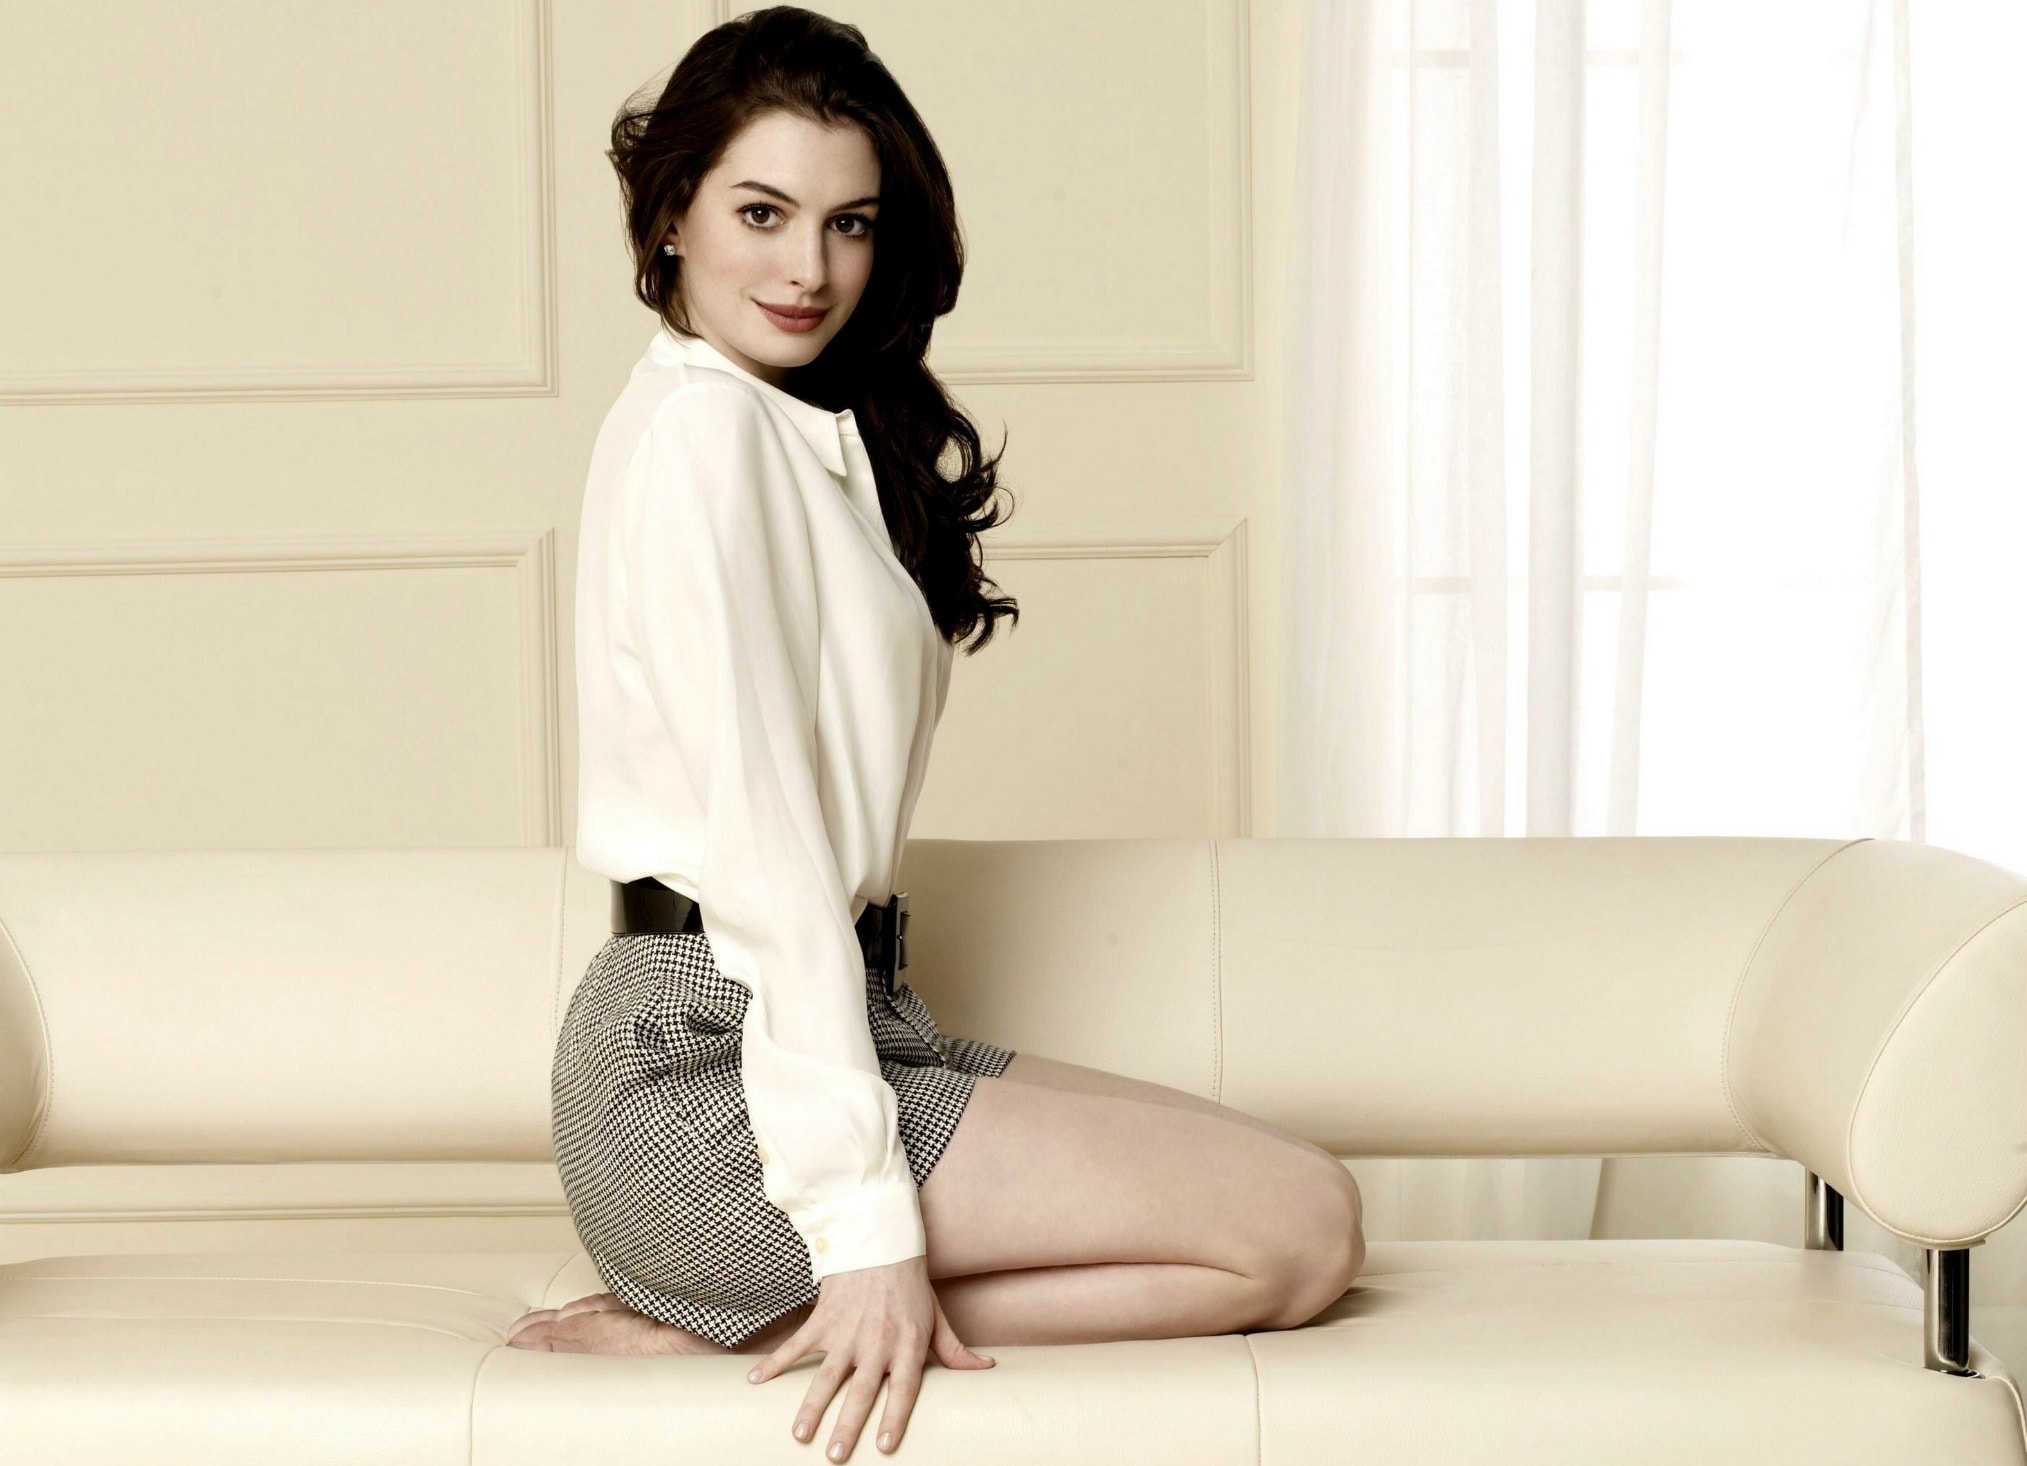 2027x1466 - Anne Hathaway Wallpapers 9